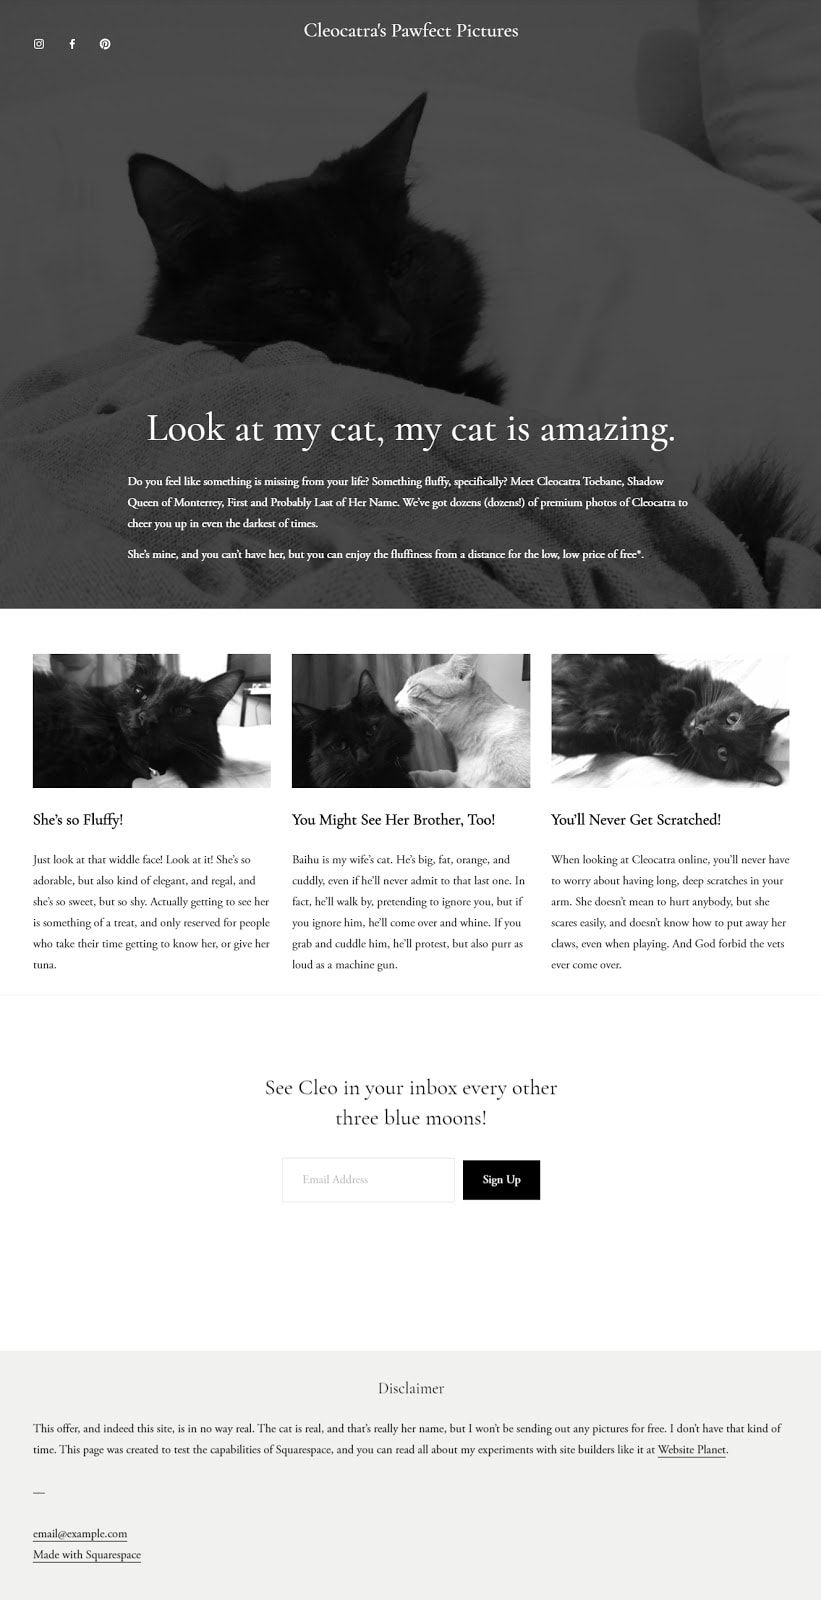 The completed Squarespace site